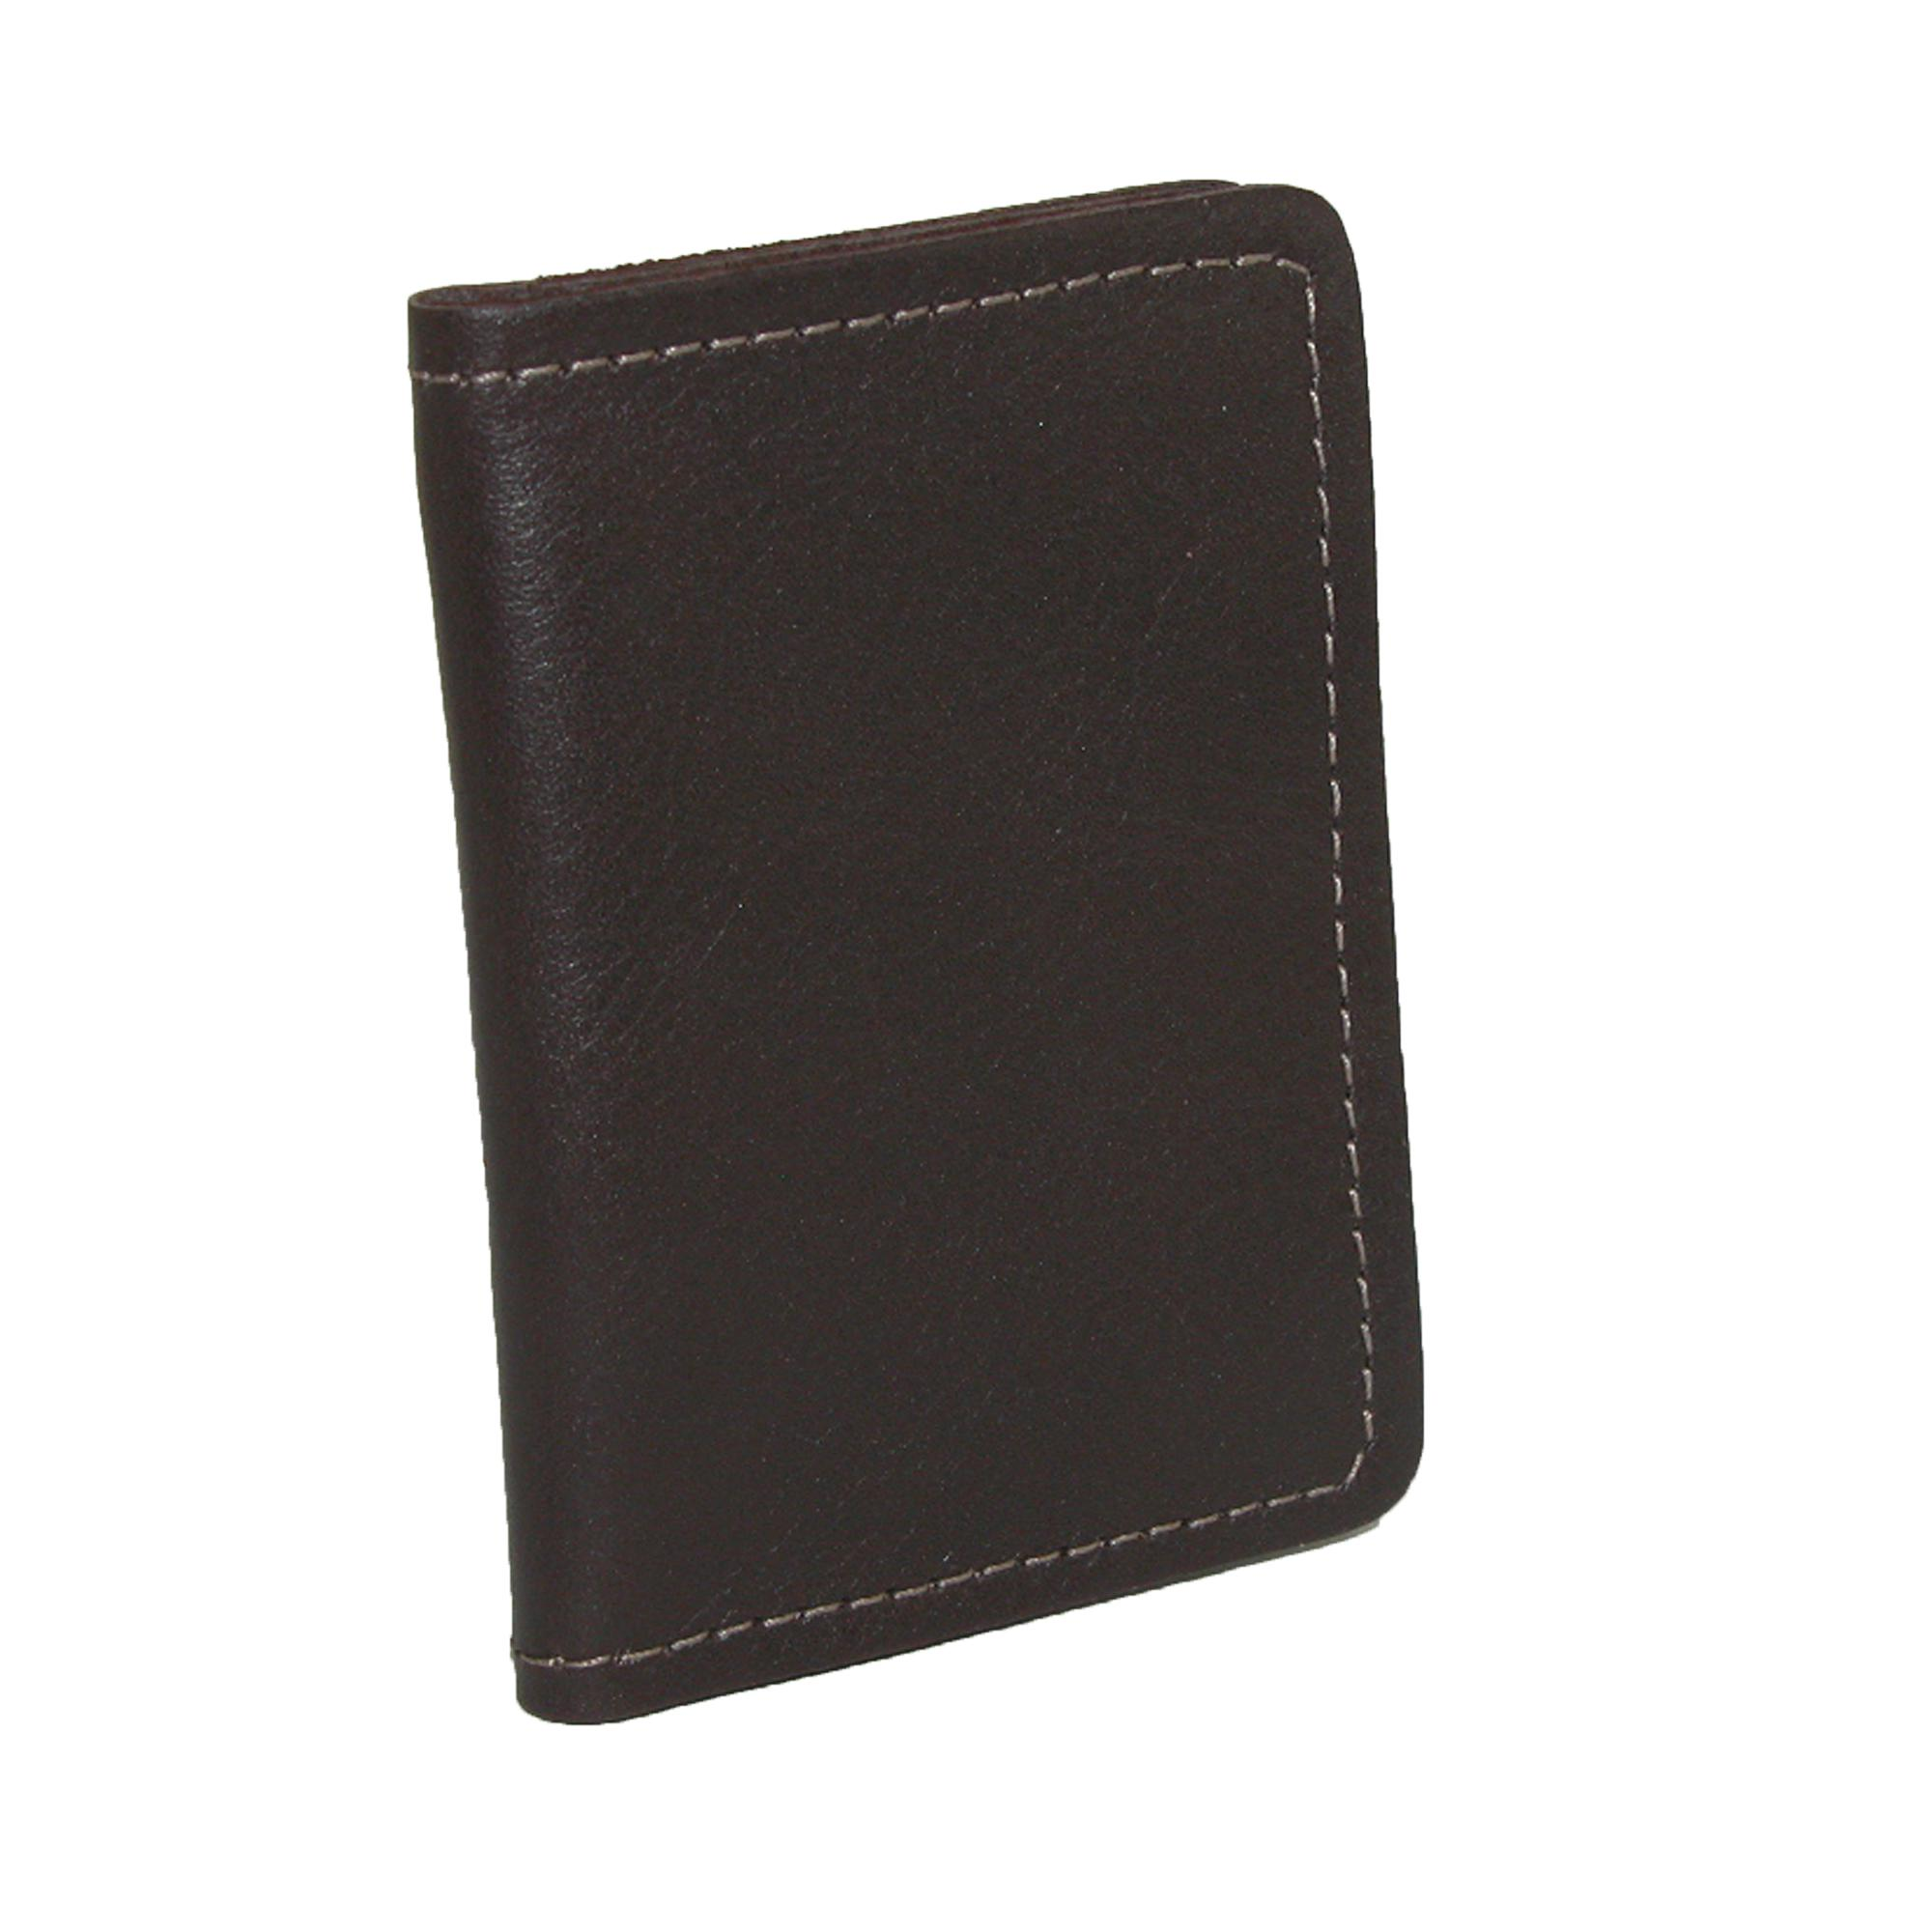 CTM_Mens_Leather_Money_Clip_BiFold_Front_Pocket_Wallet_